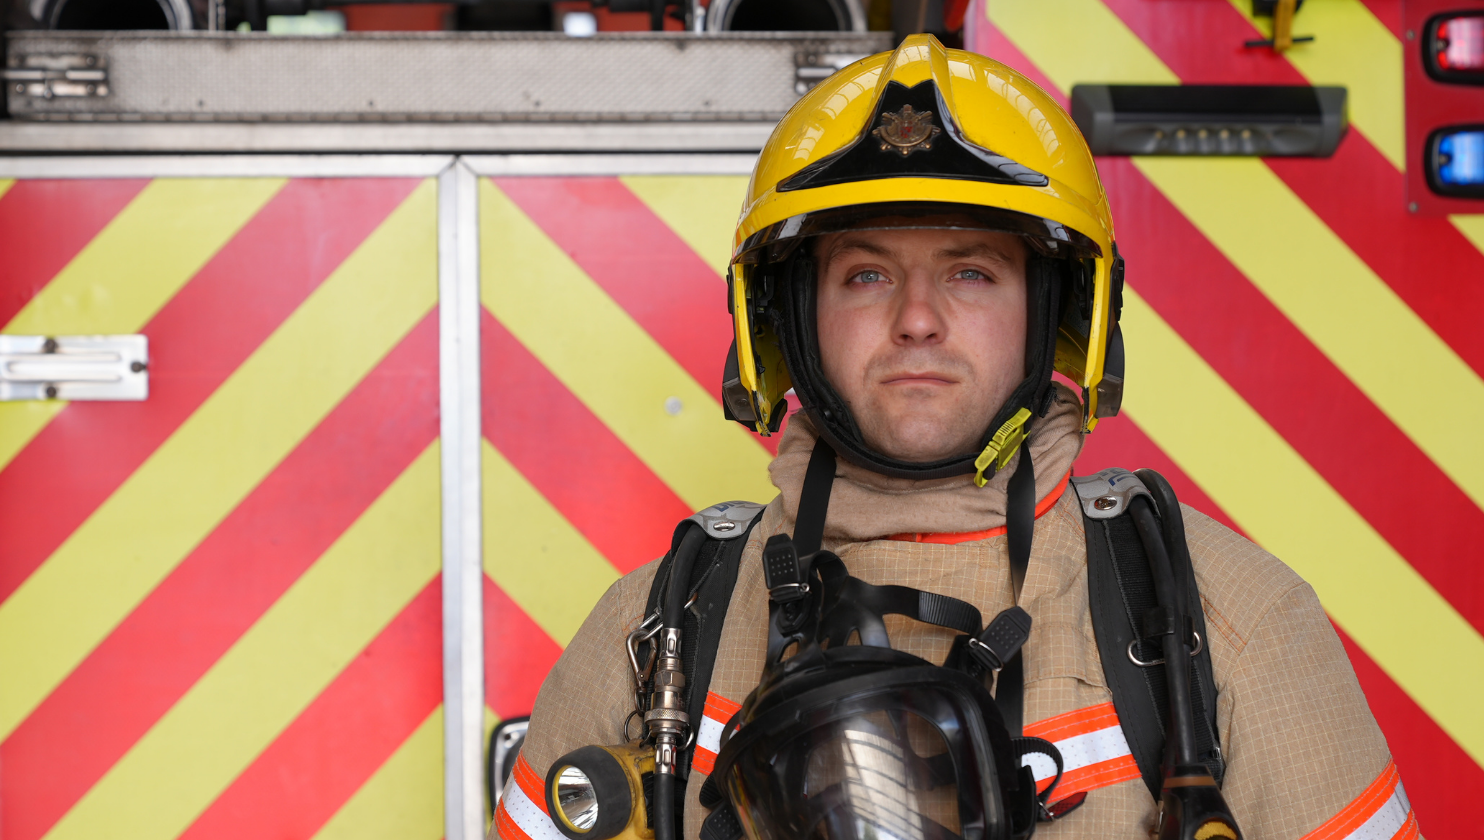 Firefighter attempts World Record in BA kit for Charity